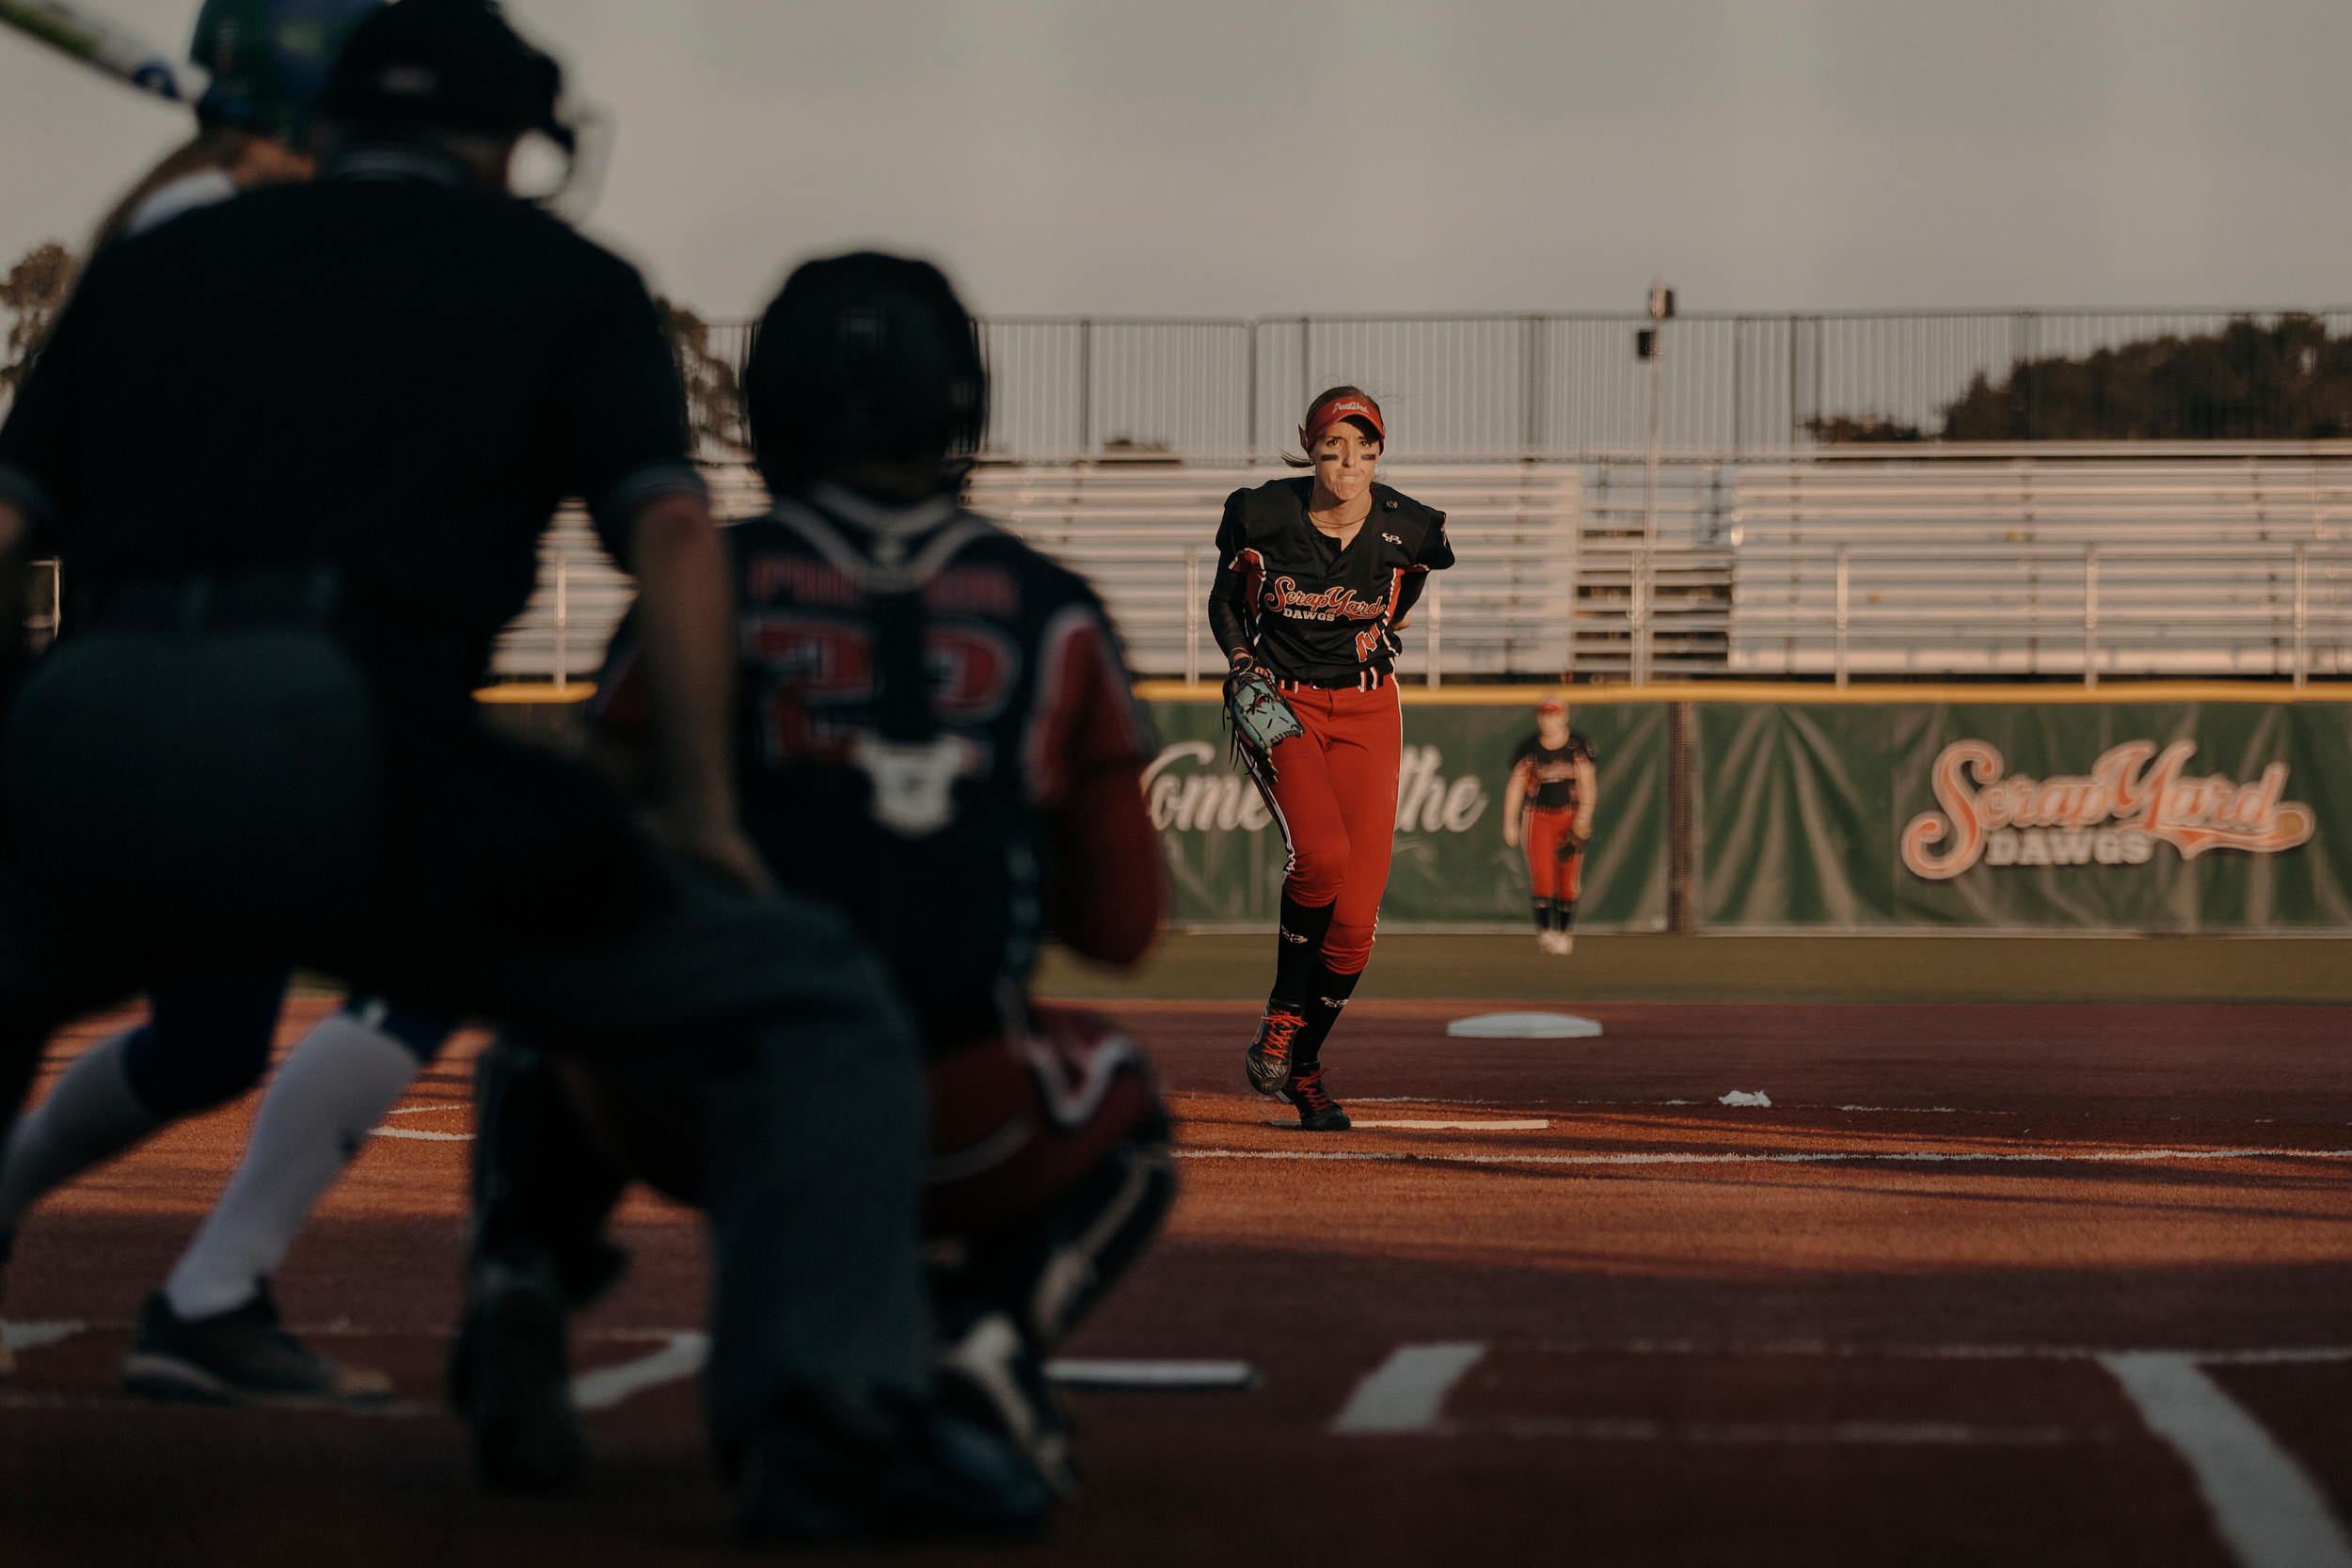 Monica Abbott, 14, takes her first pitch against the Dallas Charge. The Scrap Yard Dawgs won the game 1-0. Todd Spoth for The New York Times.